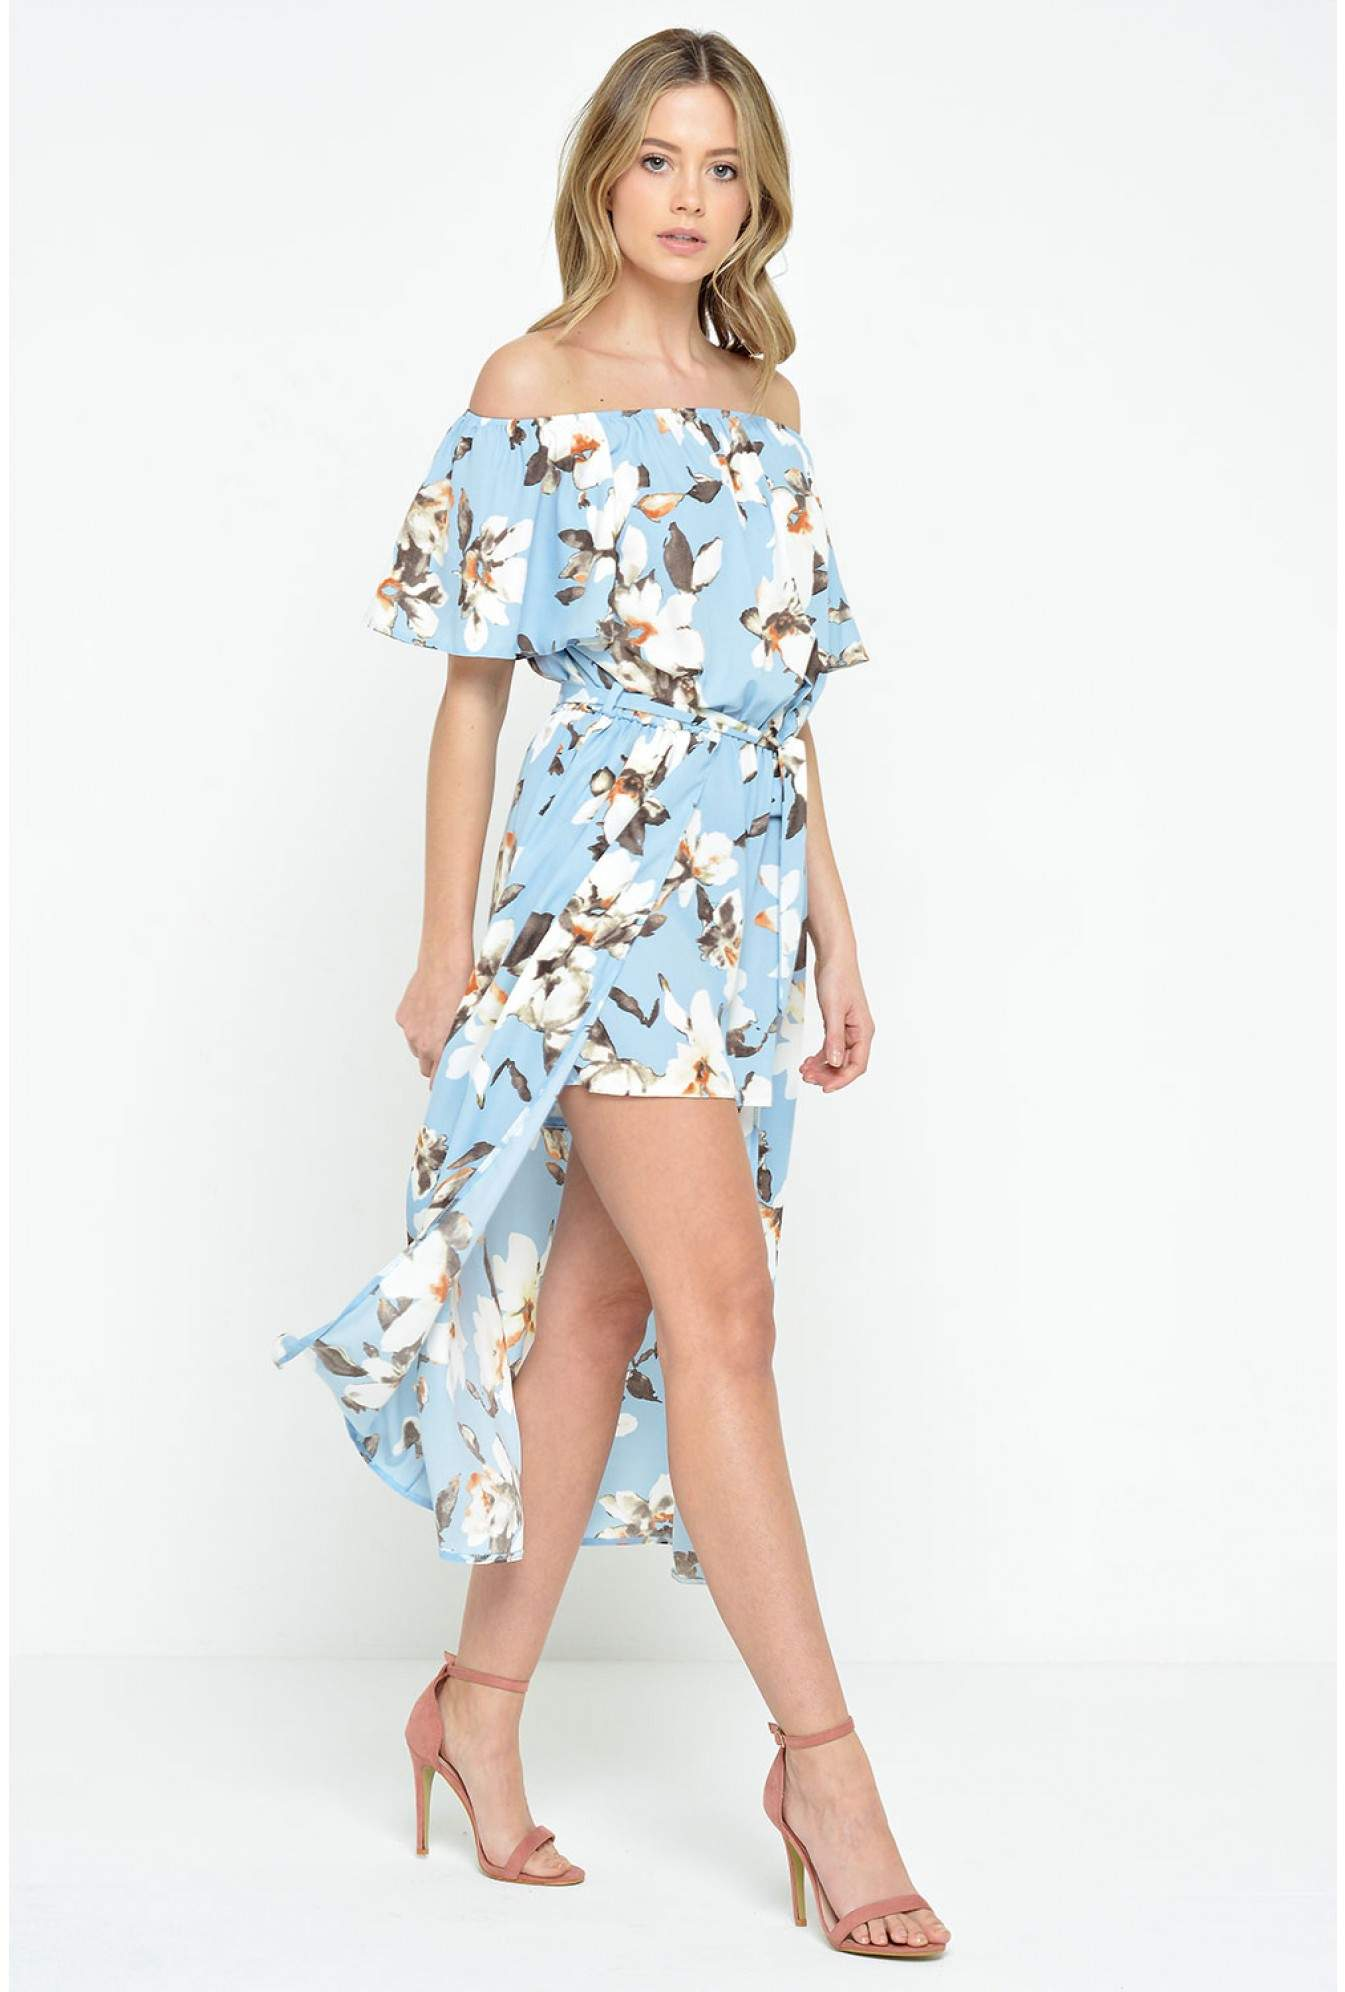 aa86f6b8c72 More Views. Lydia High Low Playsuit in Blue Floral. John Zack